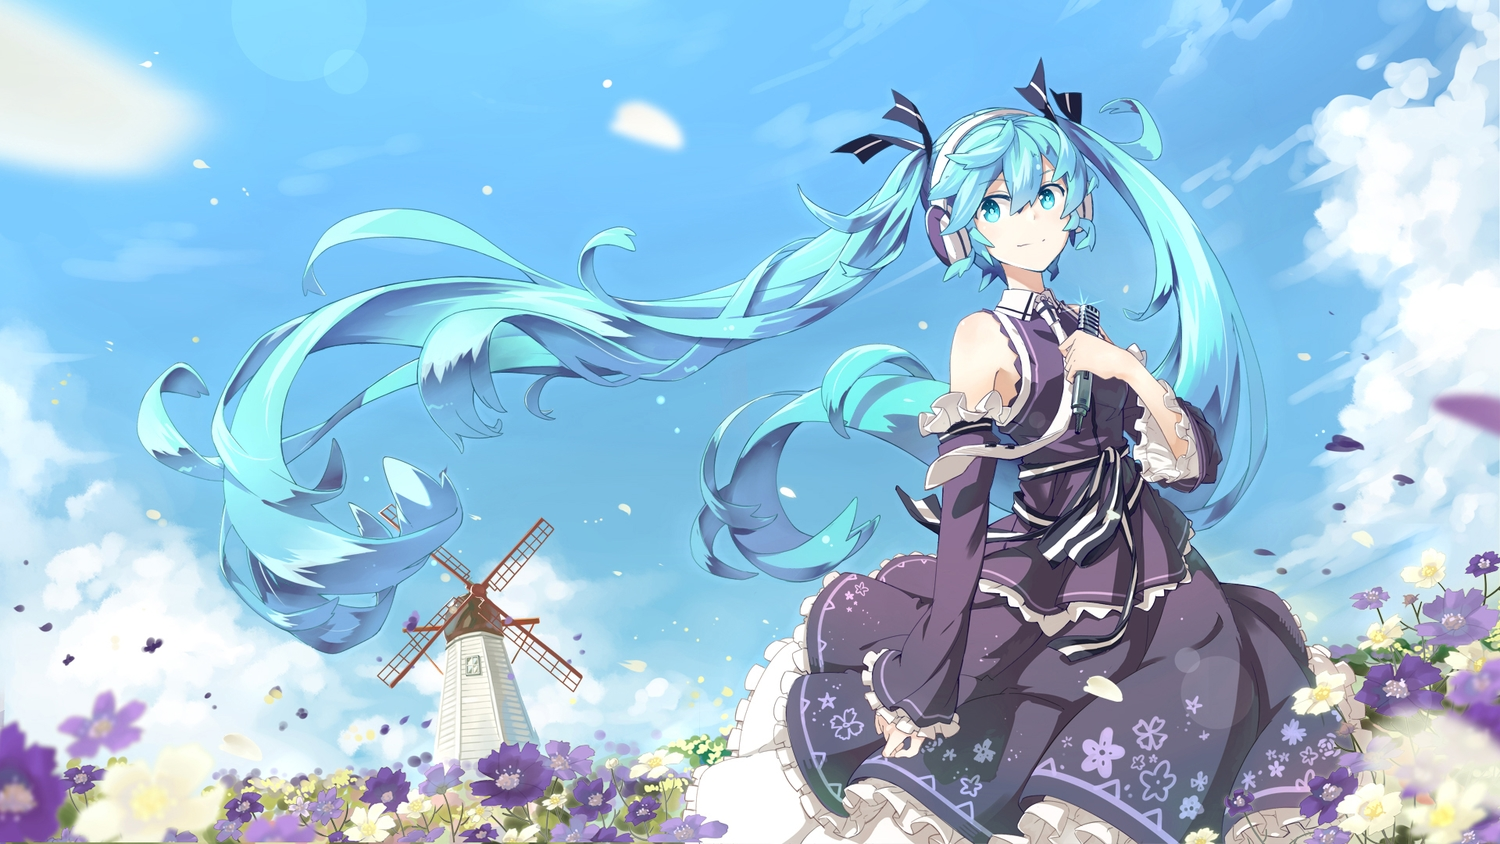 aqua_eyes aqua_hair flowers hatsune_miku headphones lf long_hair microphone petals ribbons scenic skirt tie twintails vocaloid windmill